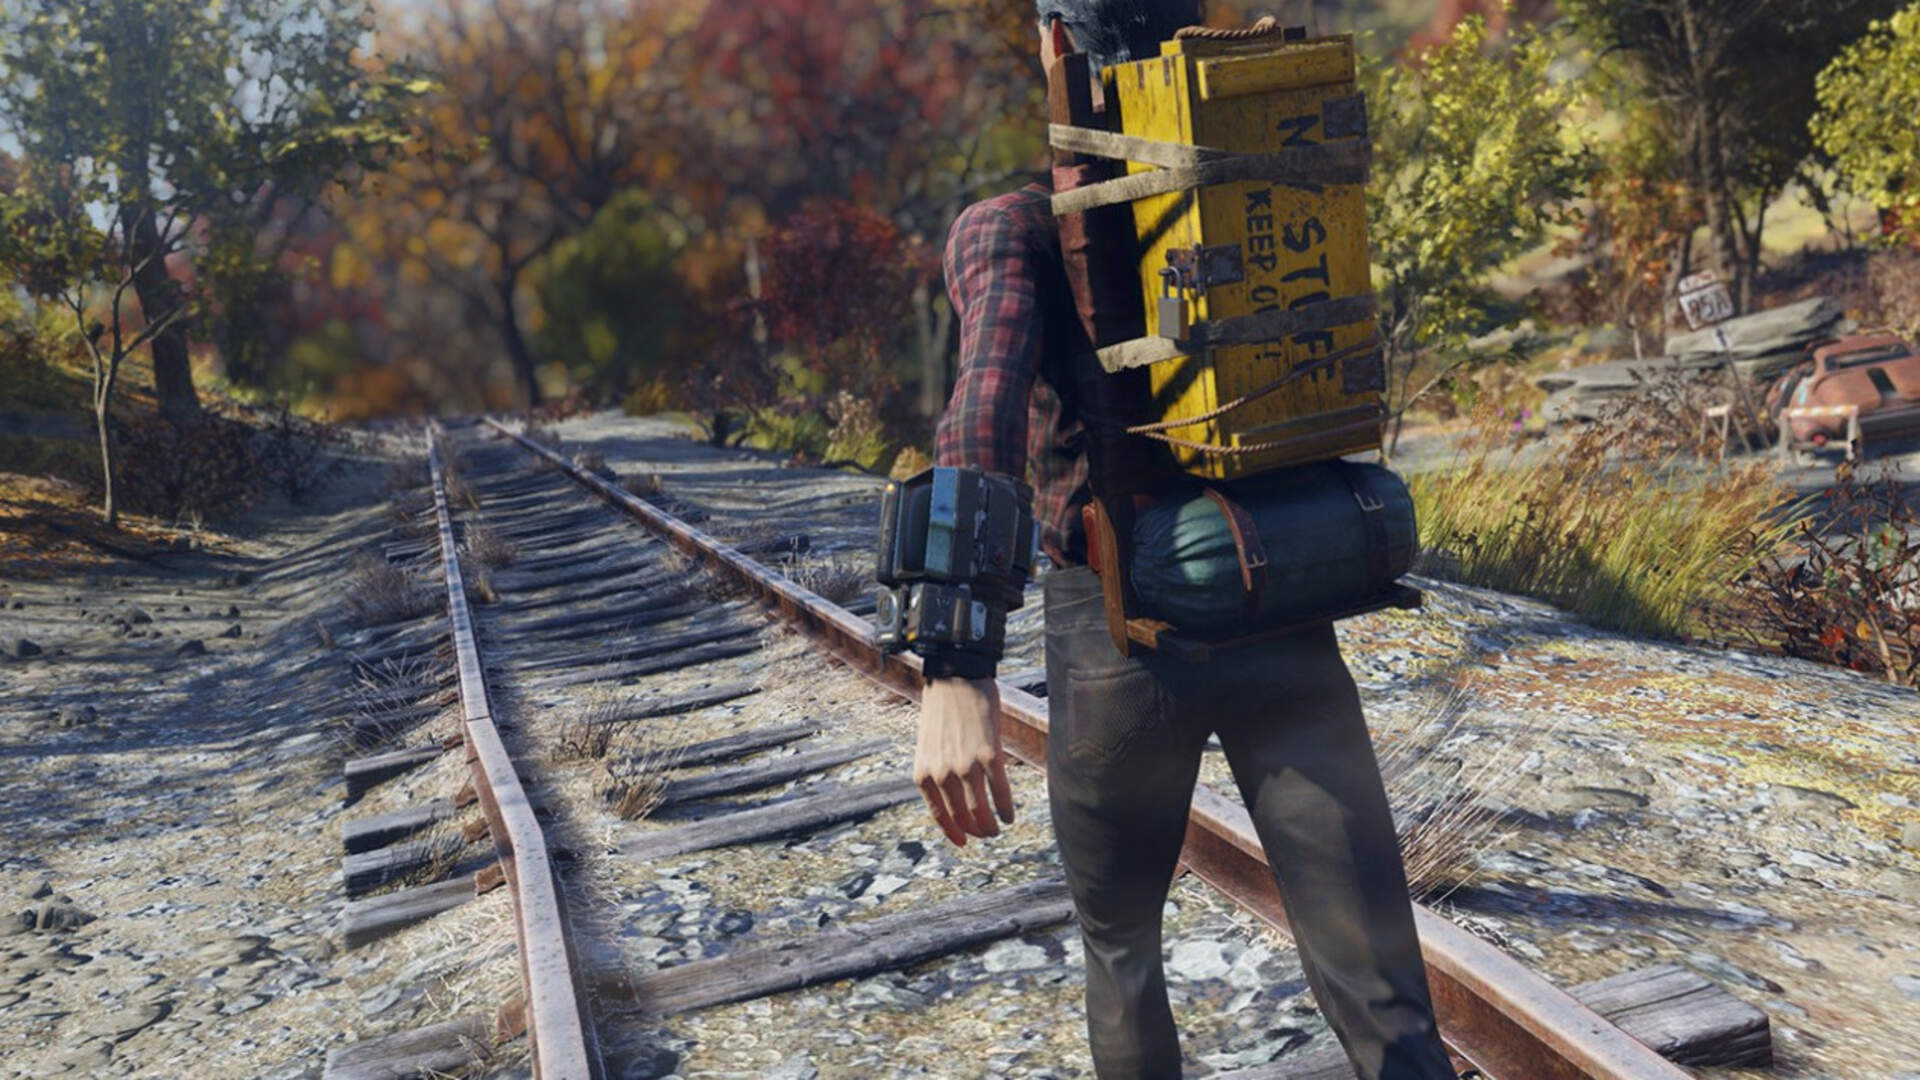 Fallout 76 Is Introducing a Much-Requested Item, but It Will Cost Real Money